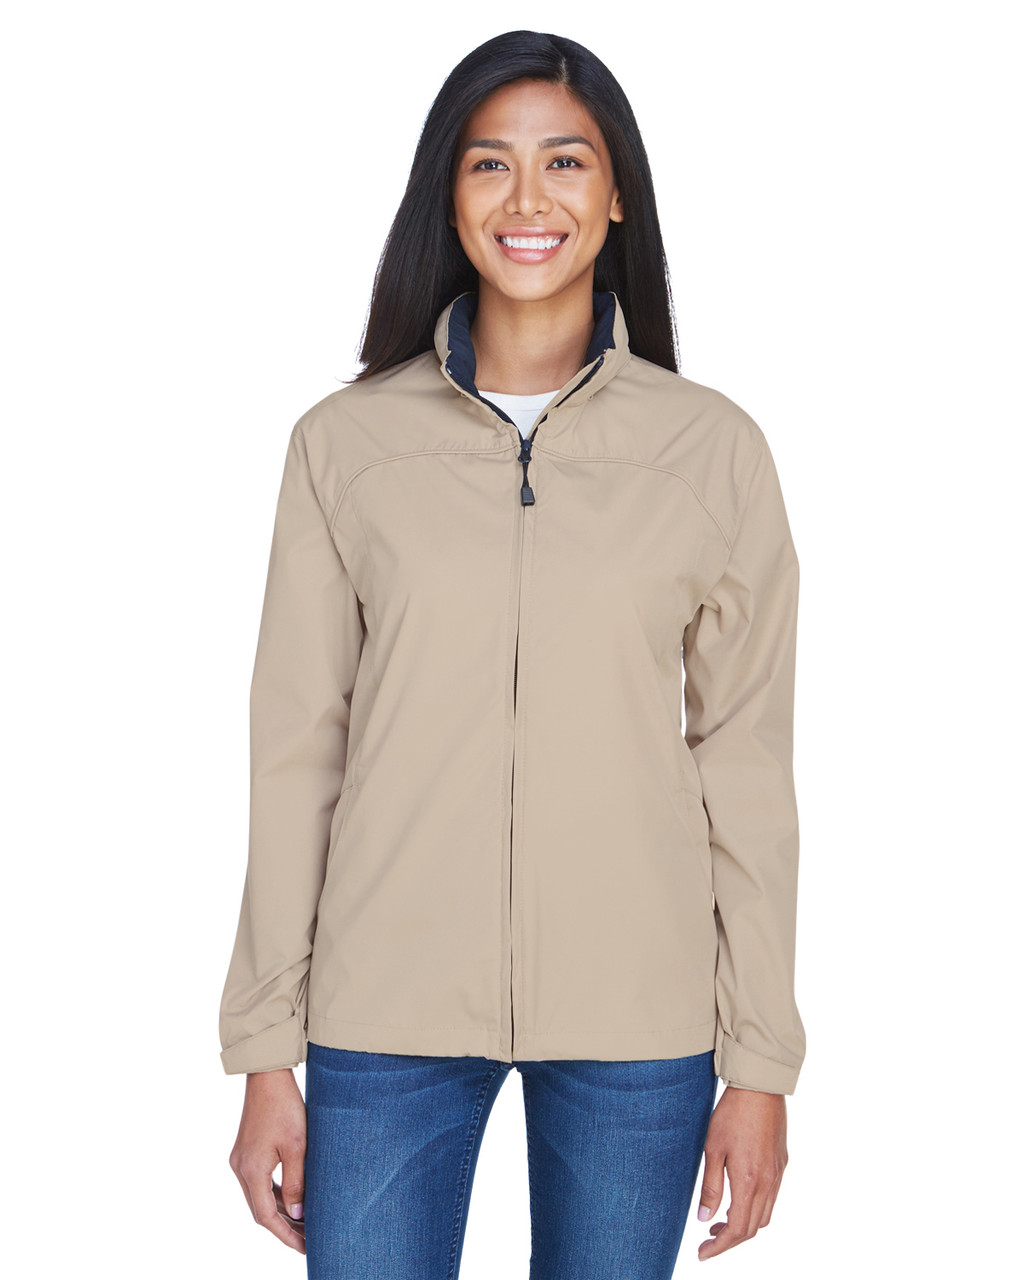 Putty - 78032 North End Ladies' Techno Lite Jacket | BlankClothing.ca